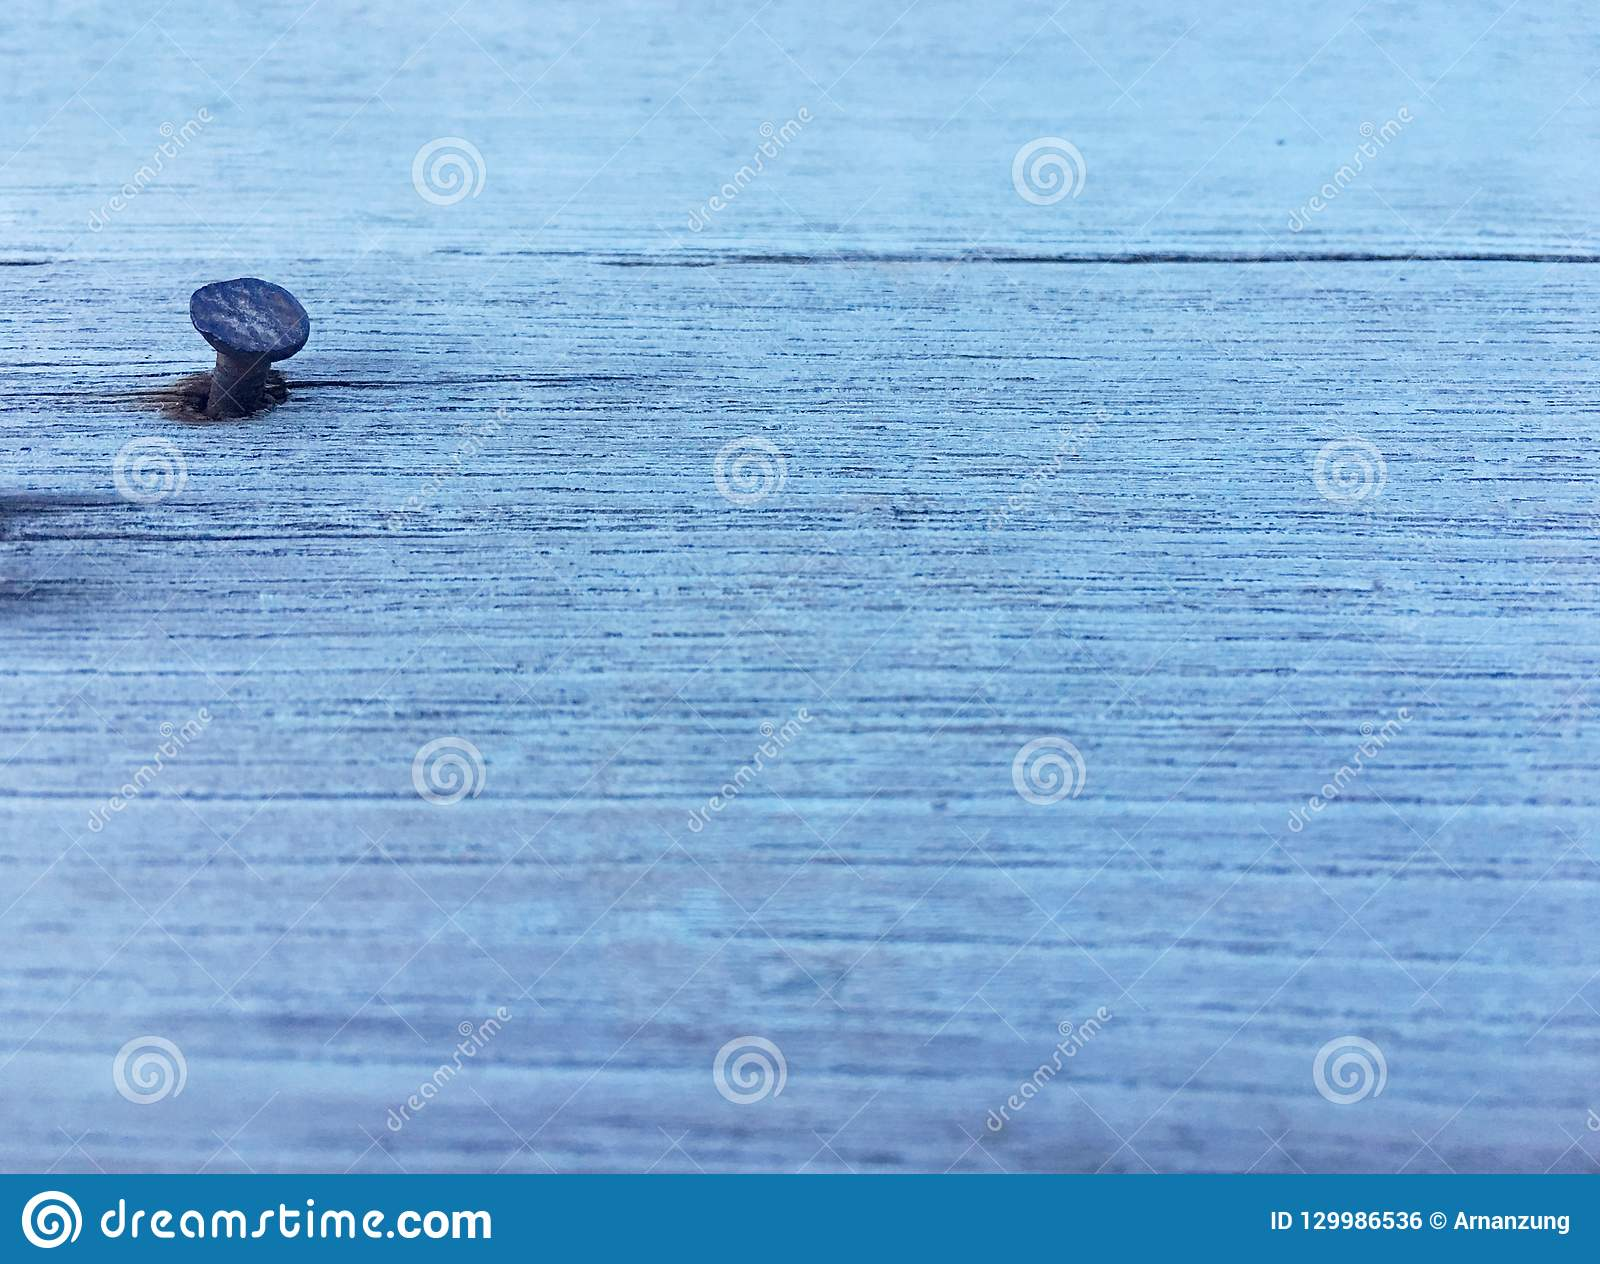 Single rust nail stick in wooden plank. Nail head pop from crack texture background